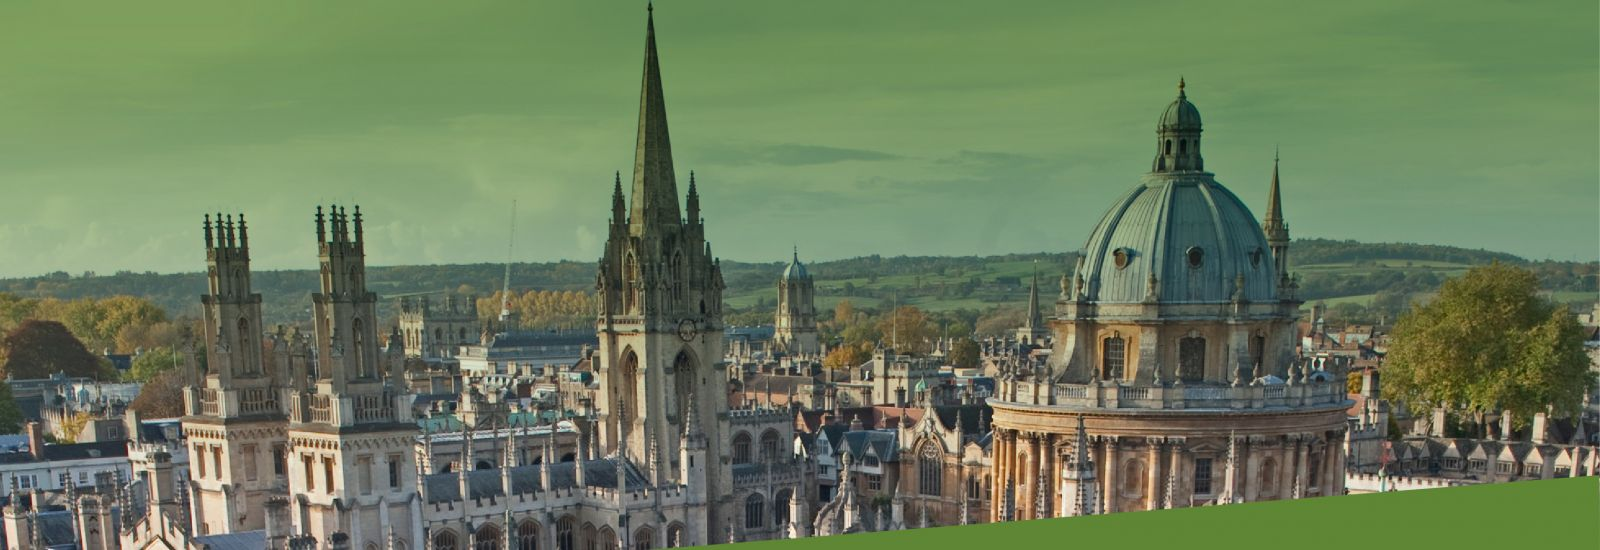 Oxford city skyline including the Radcliffe Camera, University Church spire and All Souls College